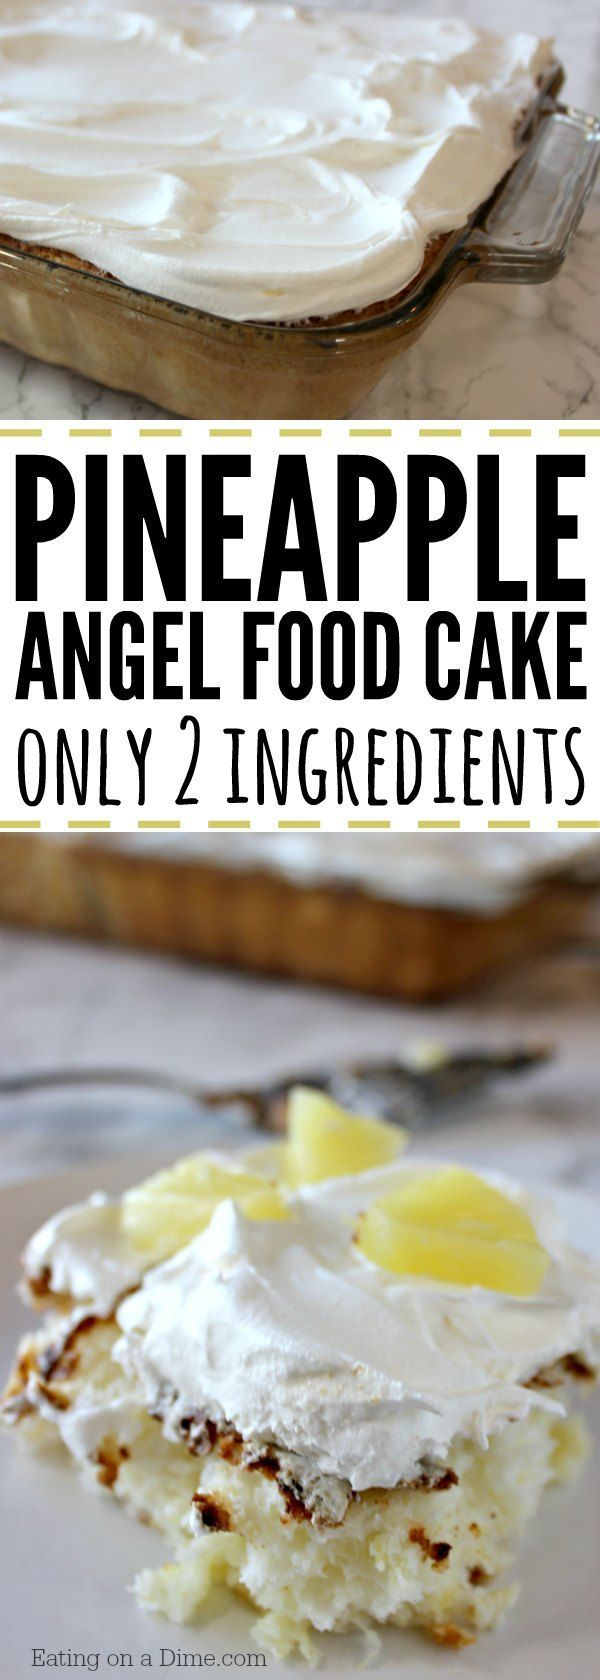 Make this easy pineapple angel food cake recipe today! With just 2 ingredients you will love it. Angel food cake and crushed pineapple make the best cake!